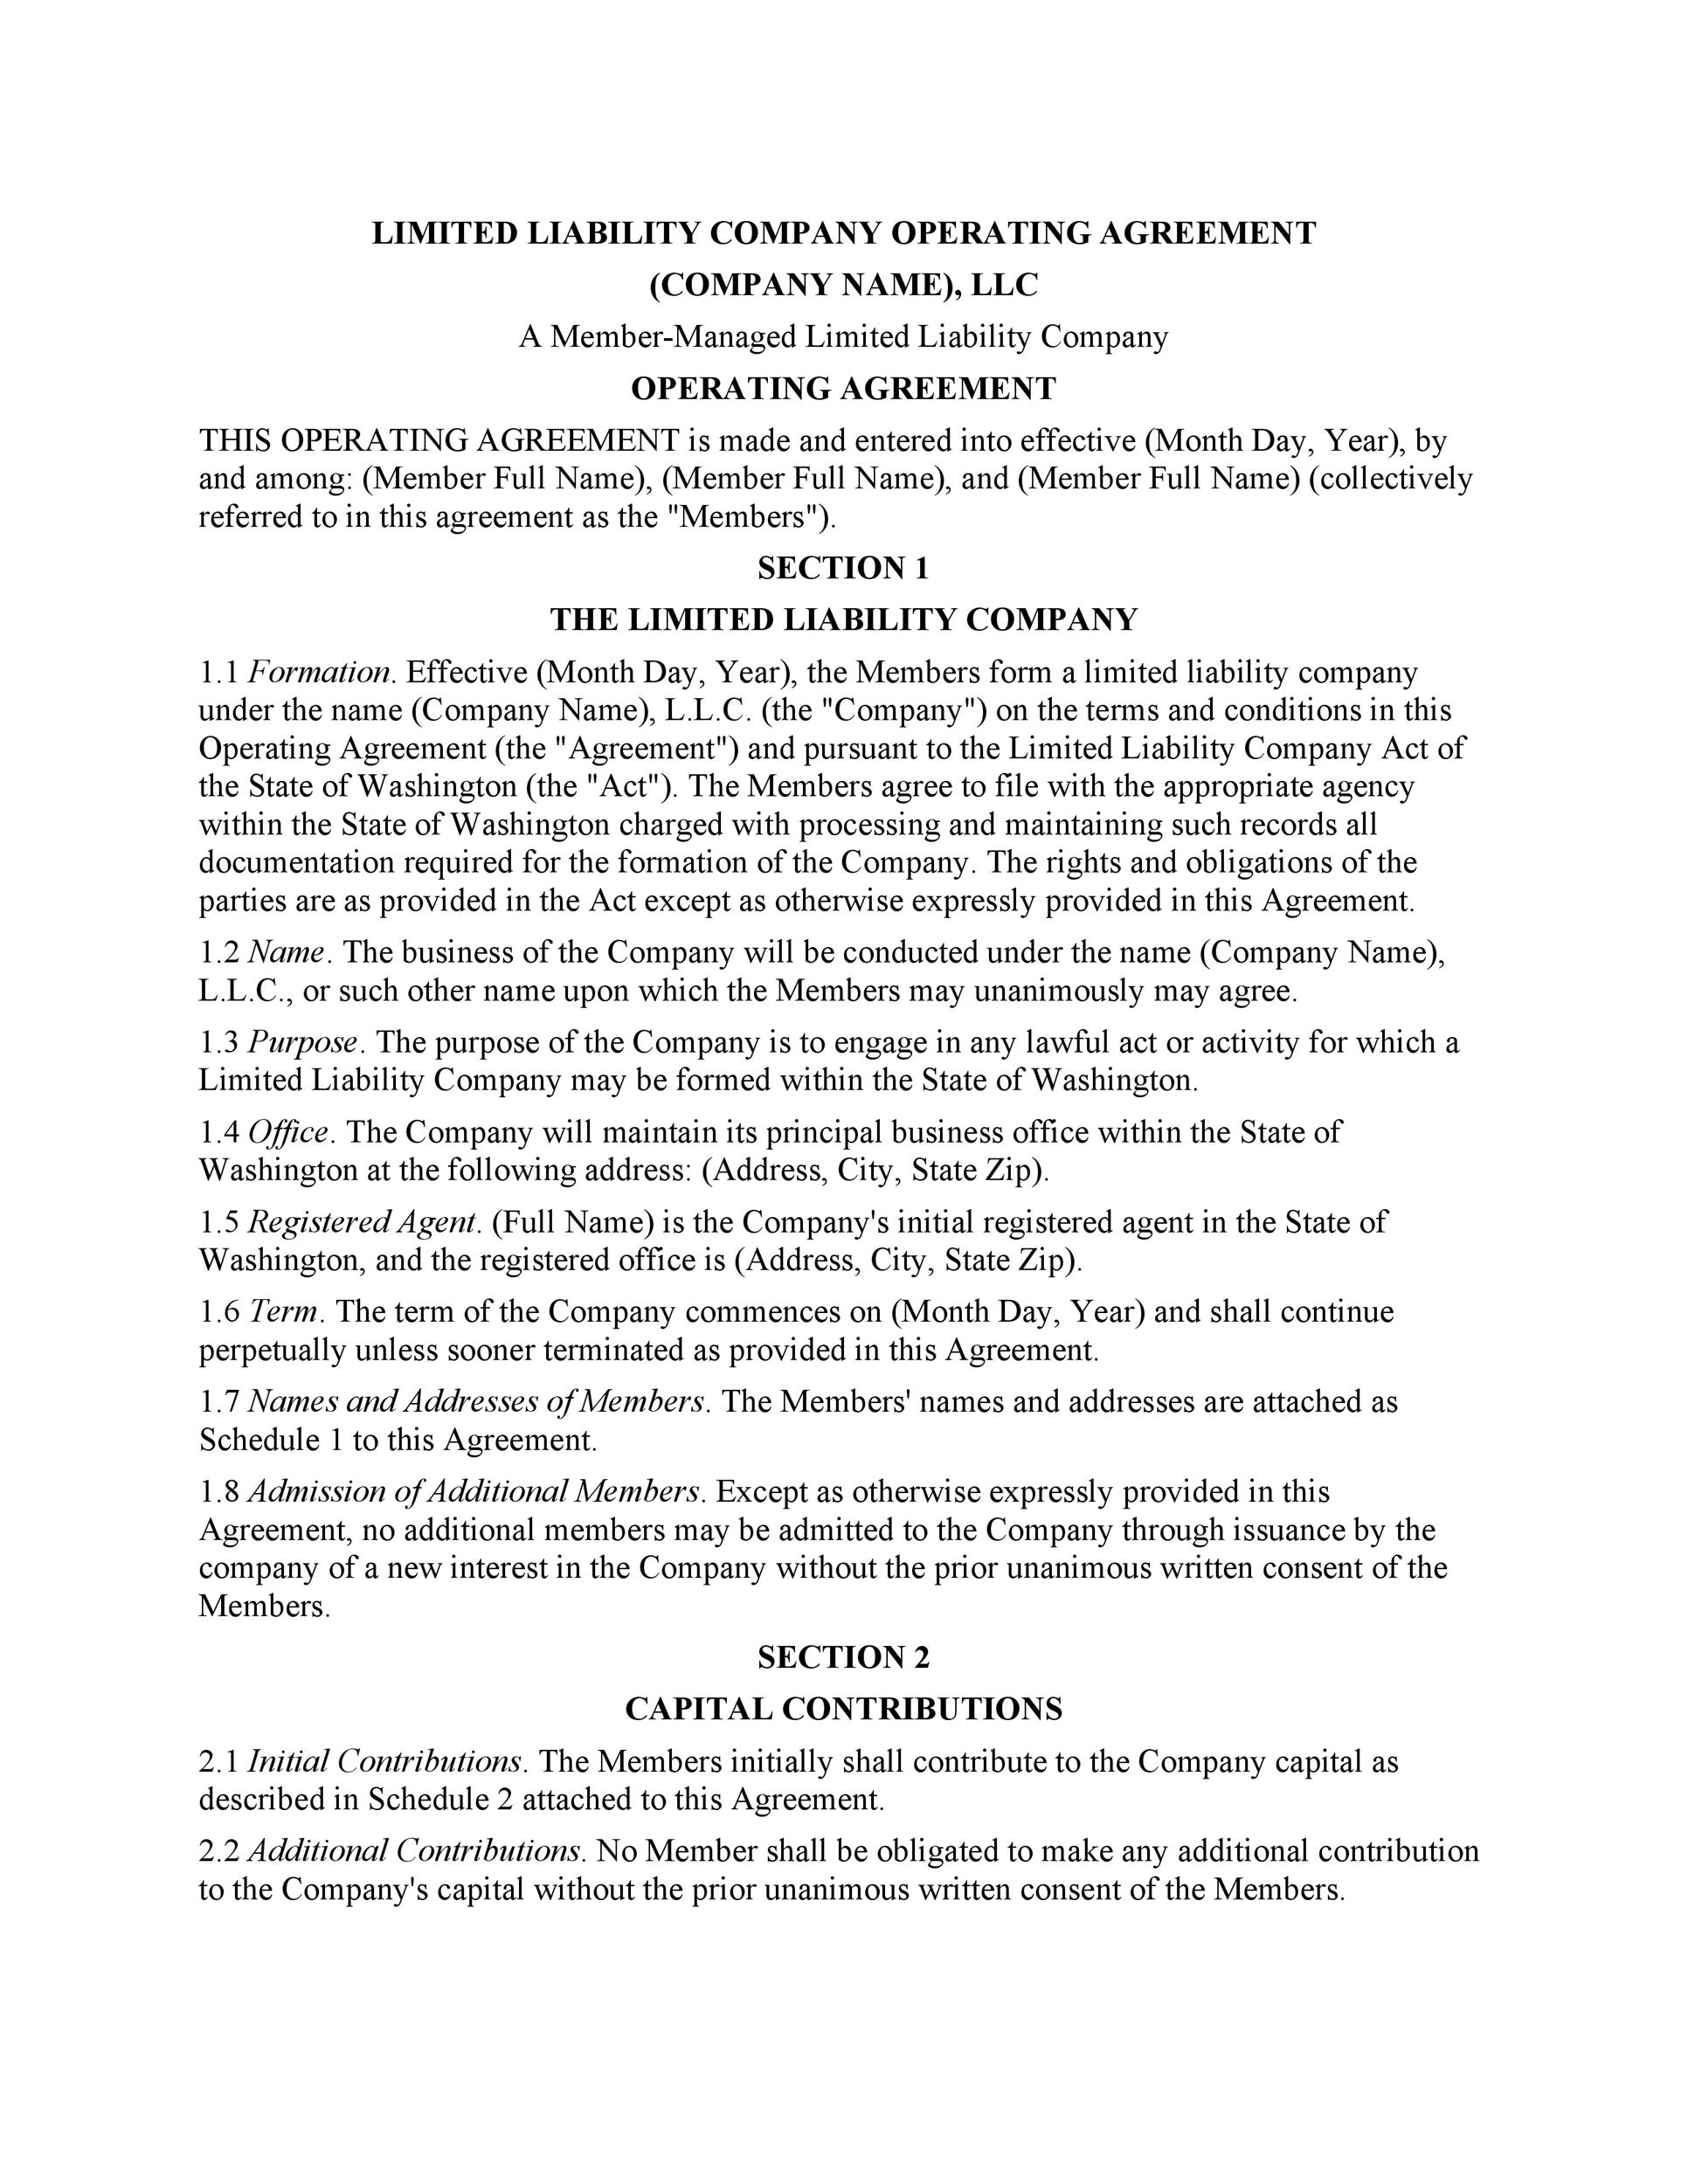 Superb Printable Llc Operating Agreement Template 01